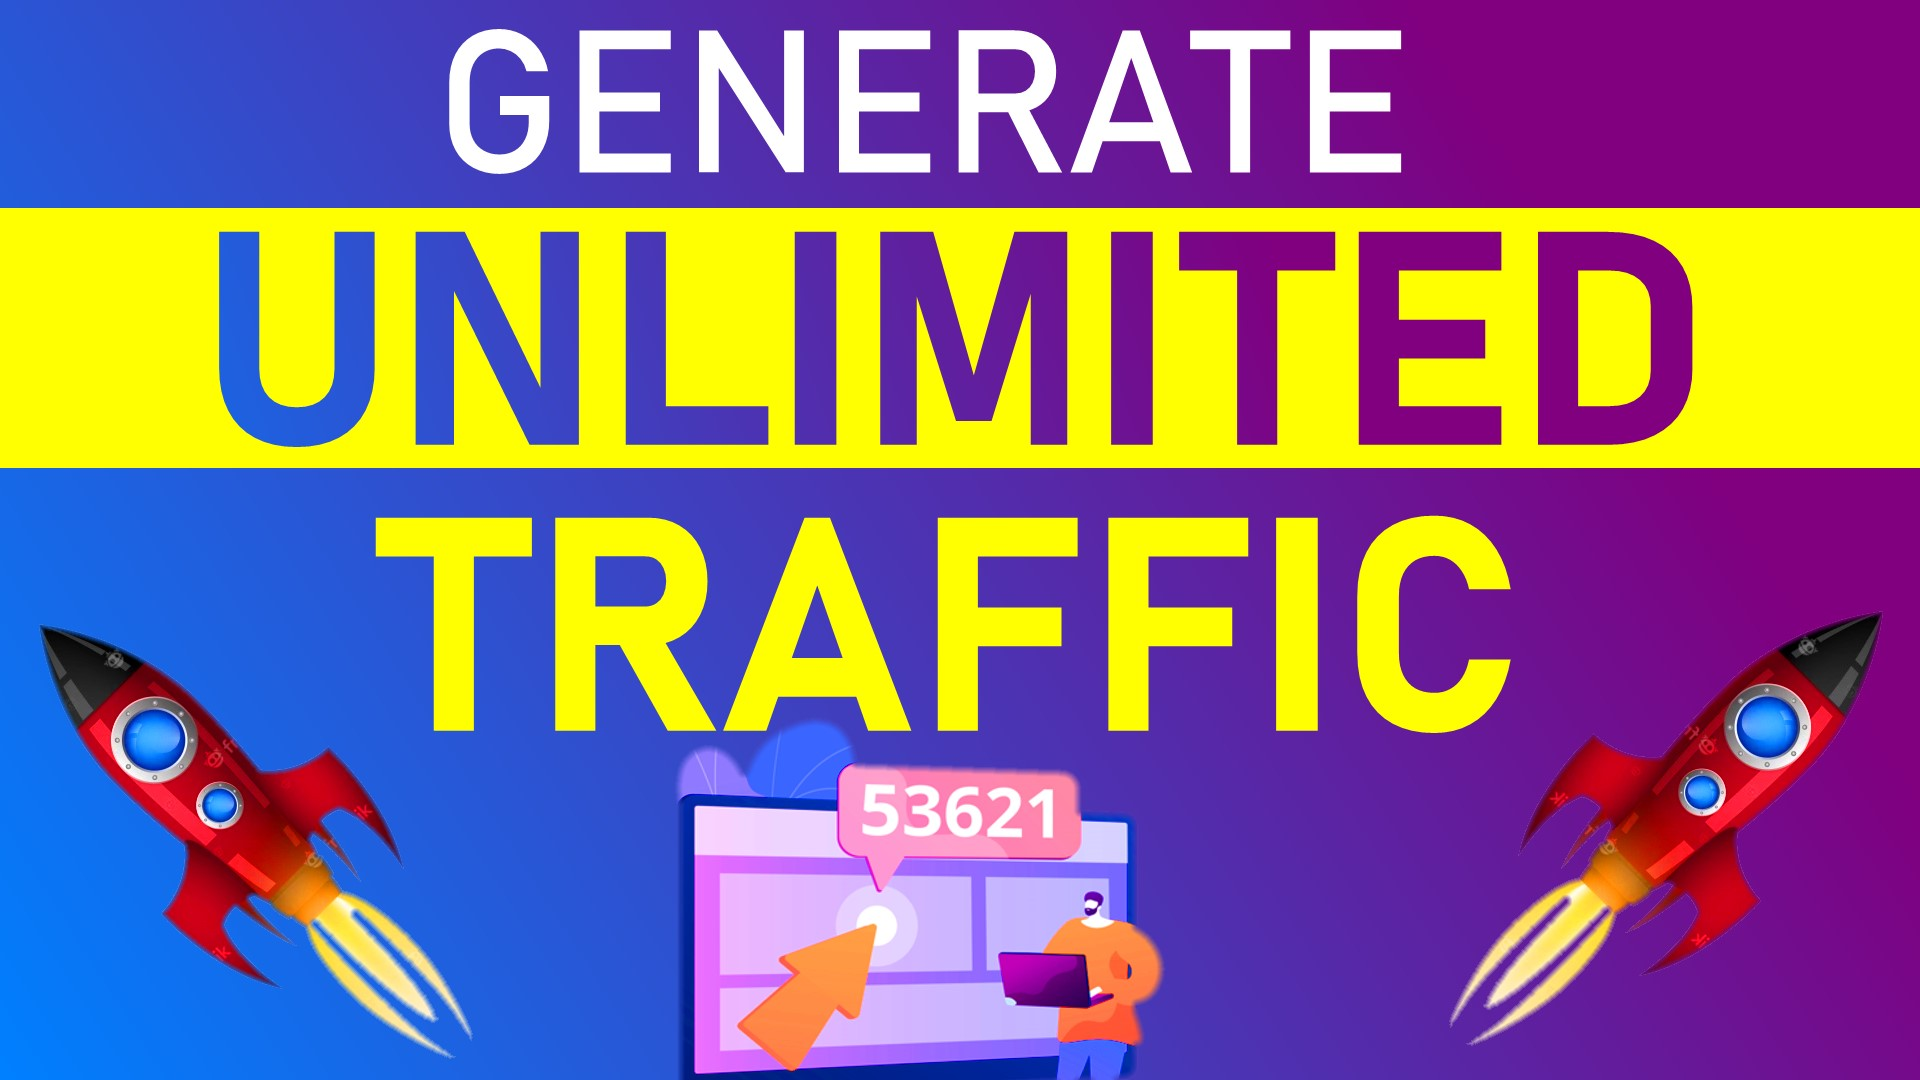 Generate Unlimited Traffic for any website (No proxies needed)